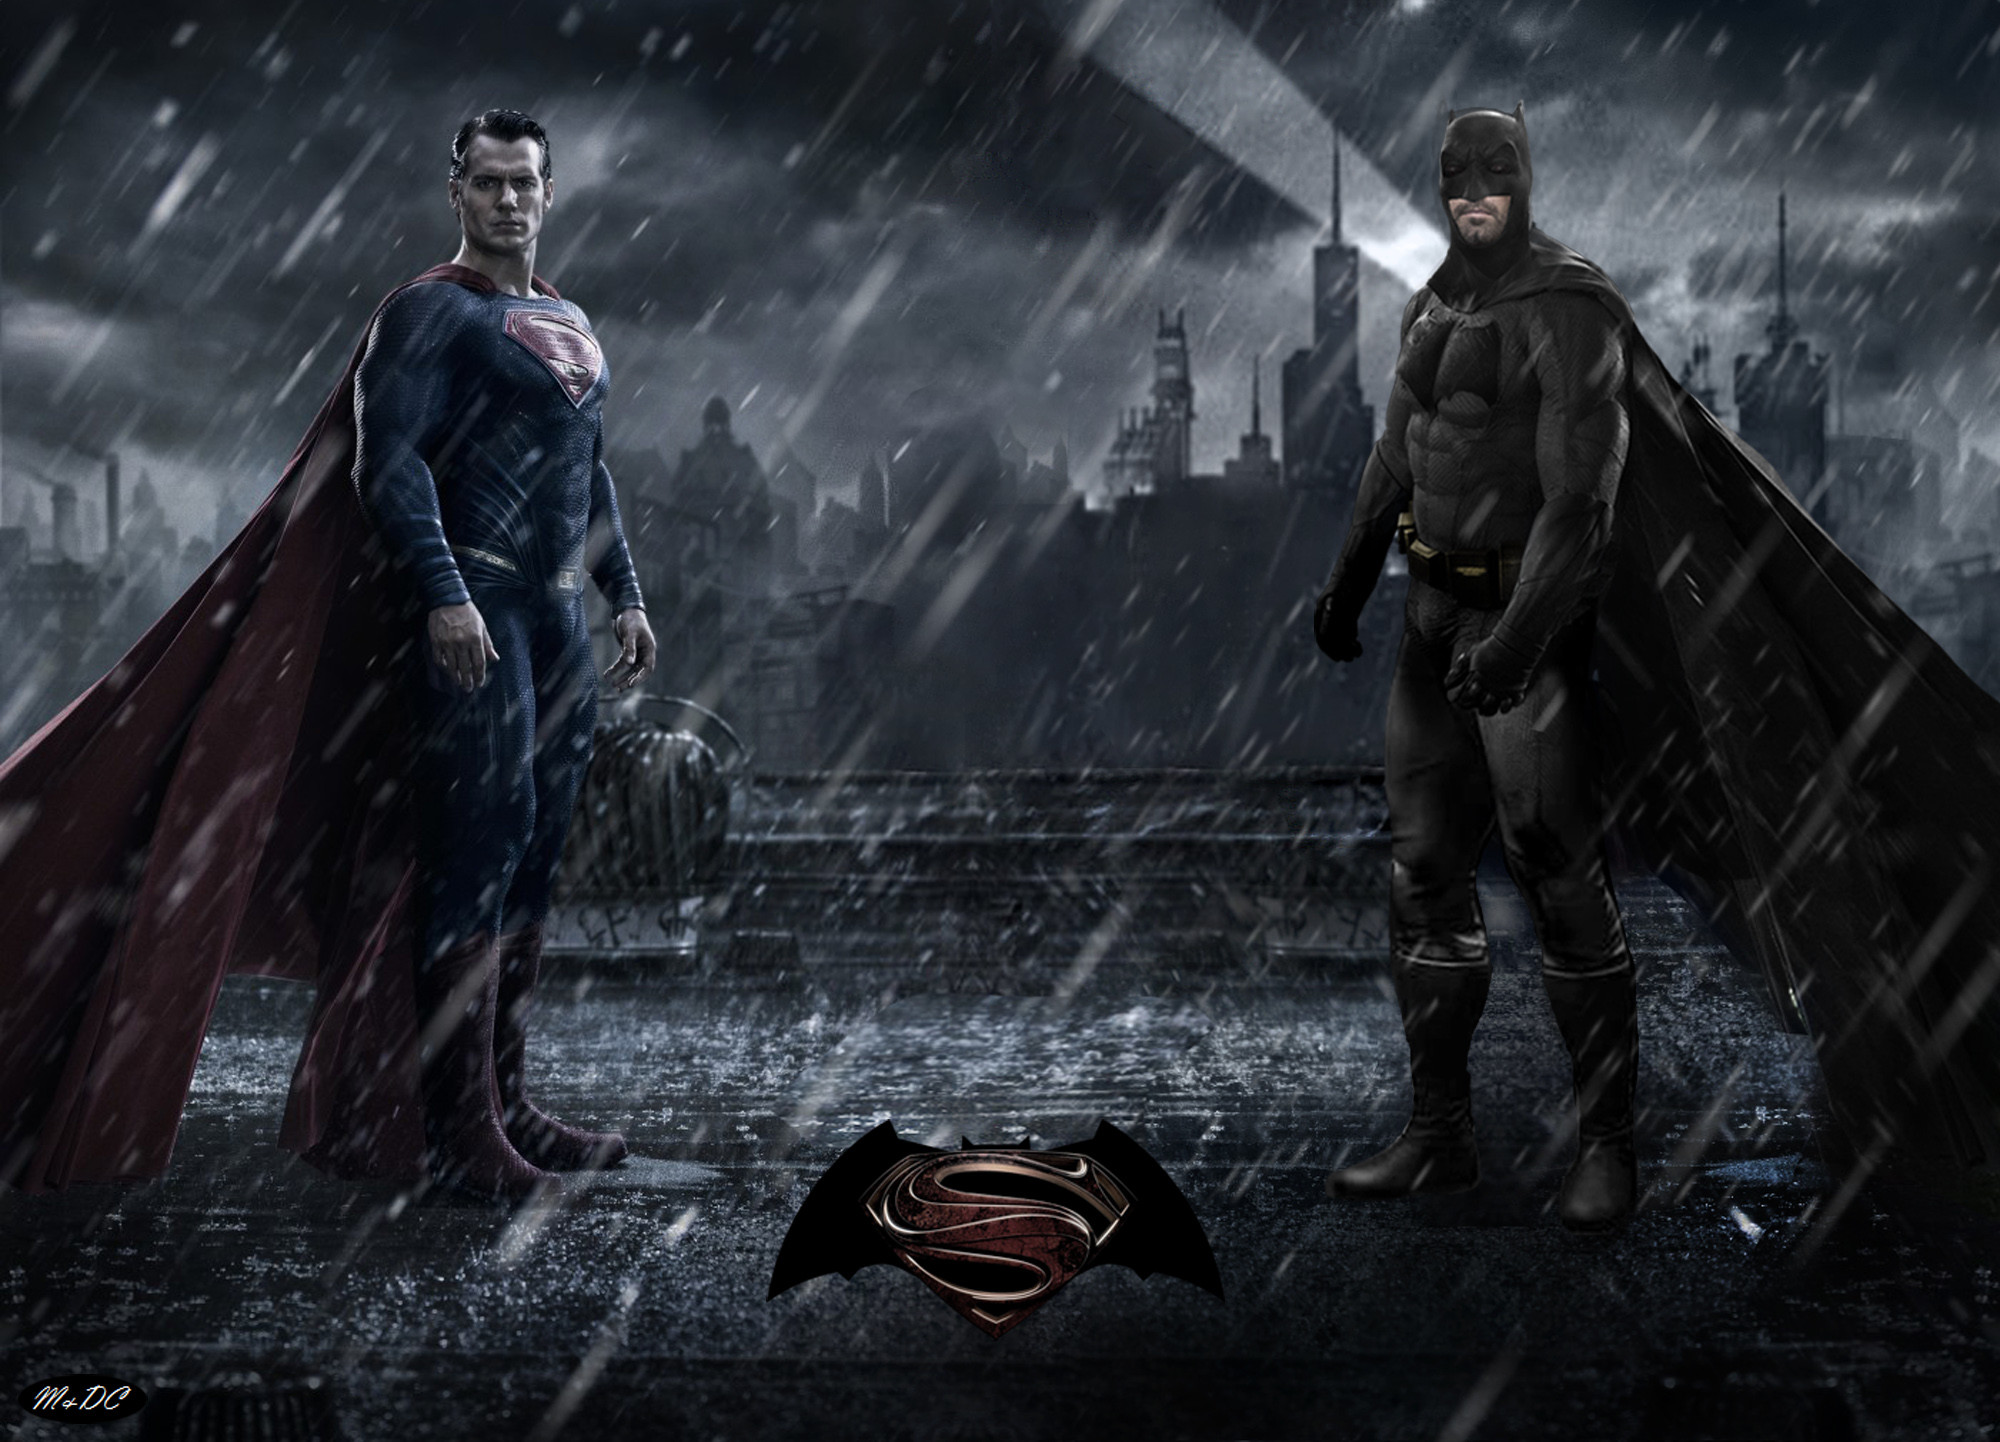 2000x1442 Batman Vs Superman HD Wallpapers 11 #BatmanVsSupermanHDWallpapers  #BatmanVsSuperman #superheroes #wallpapers #hdwallpapers